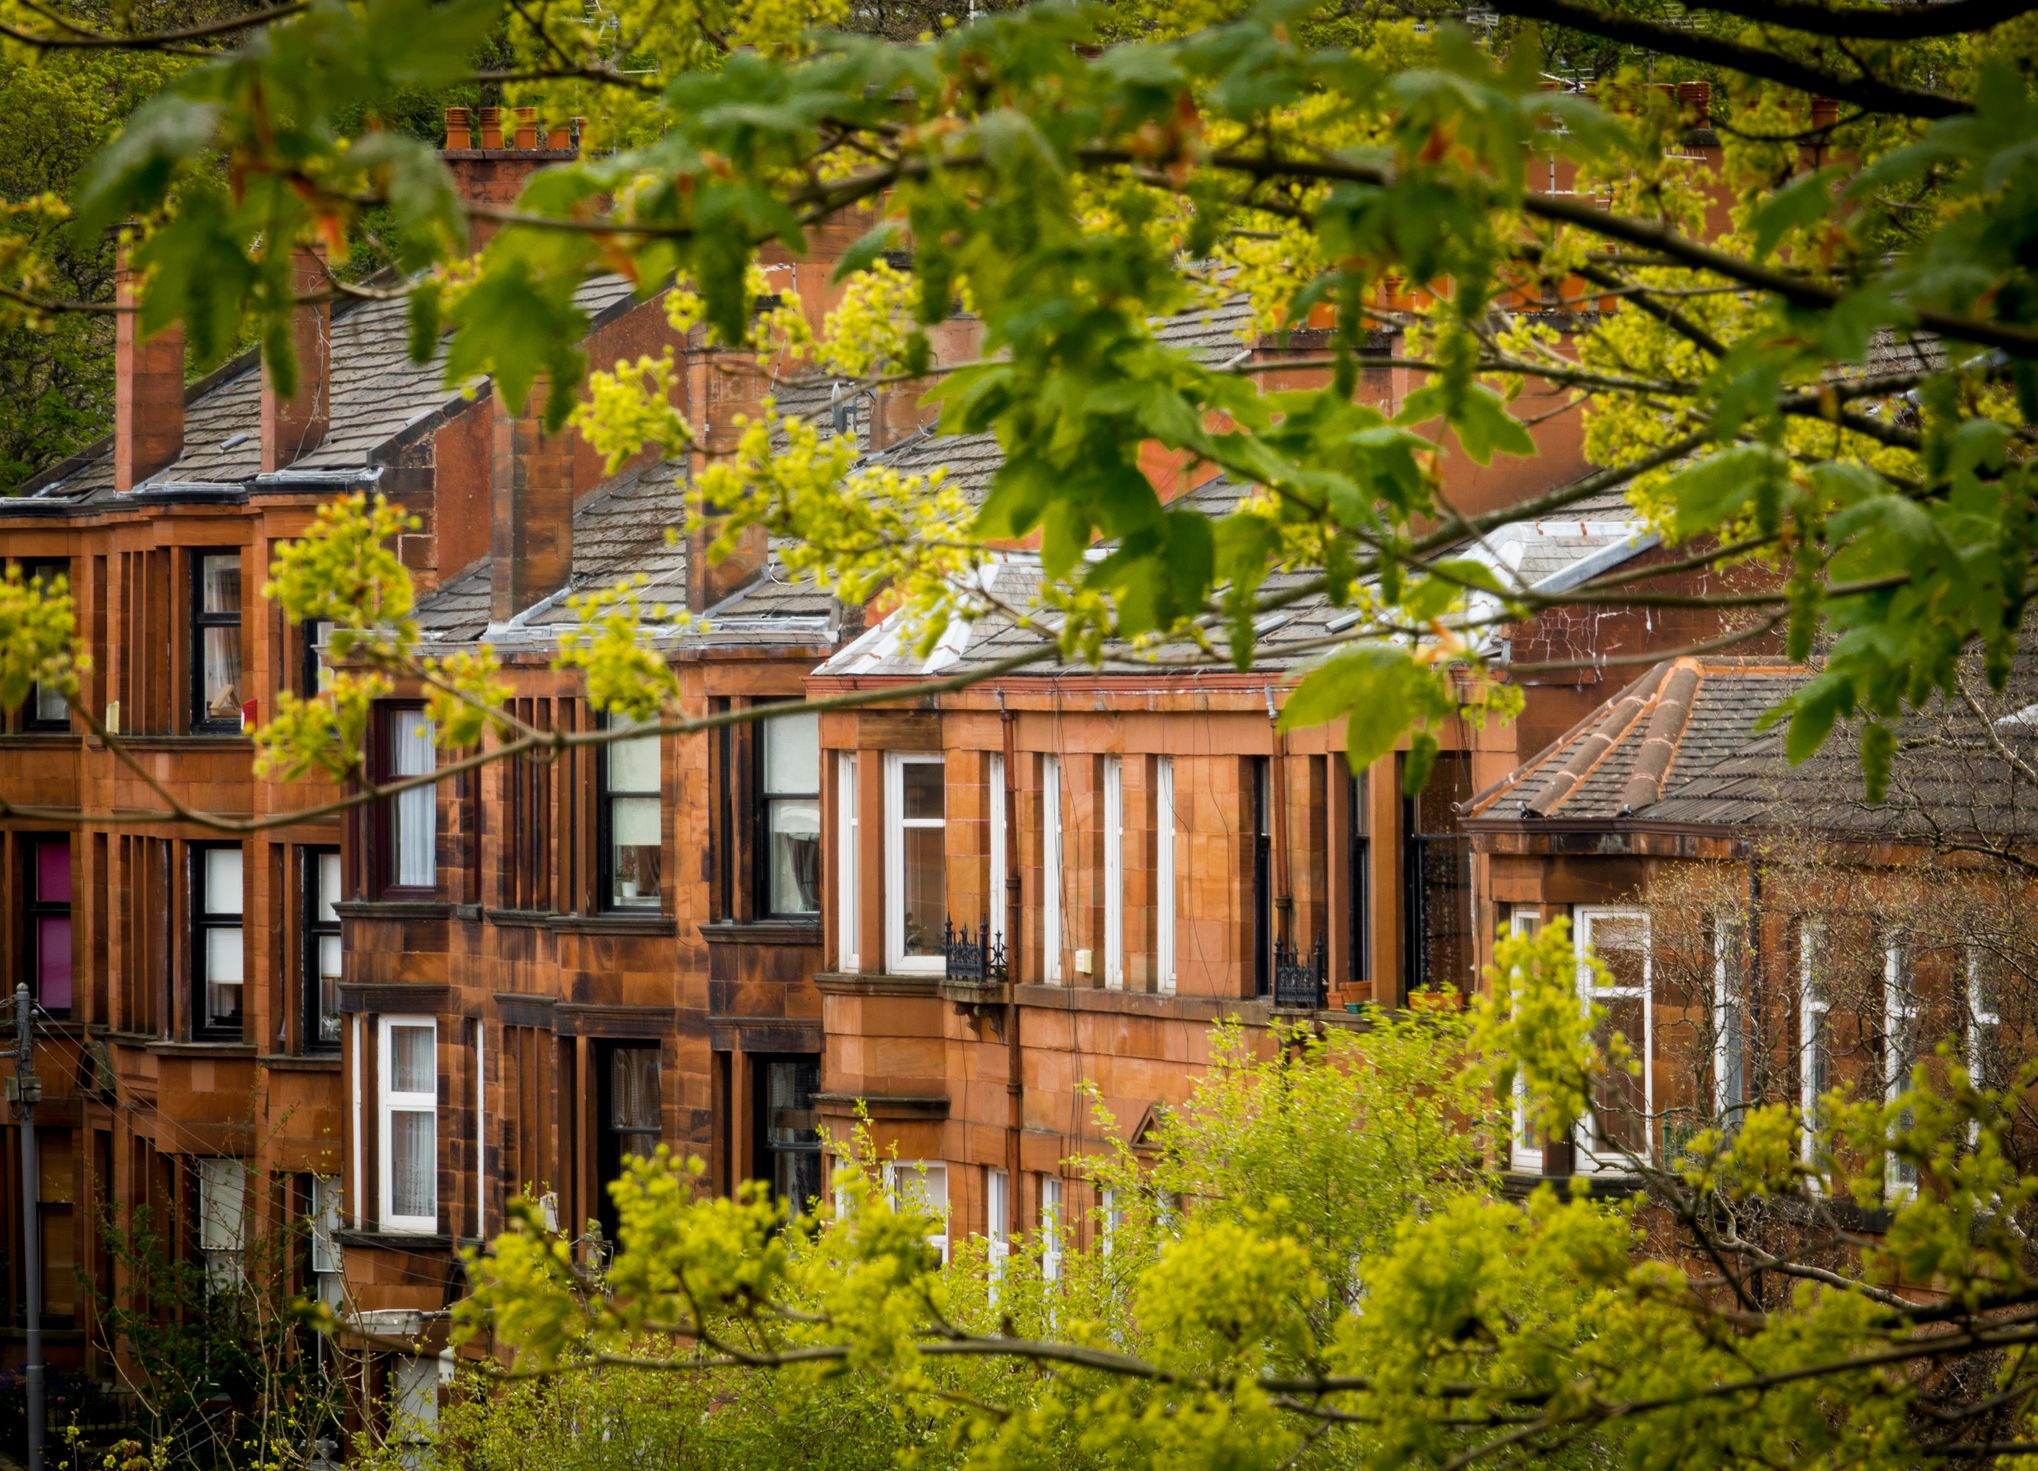 Pasiley in Scotland named the best place to rent when saving for a deposit